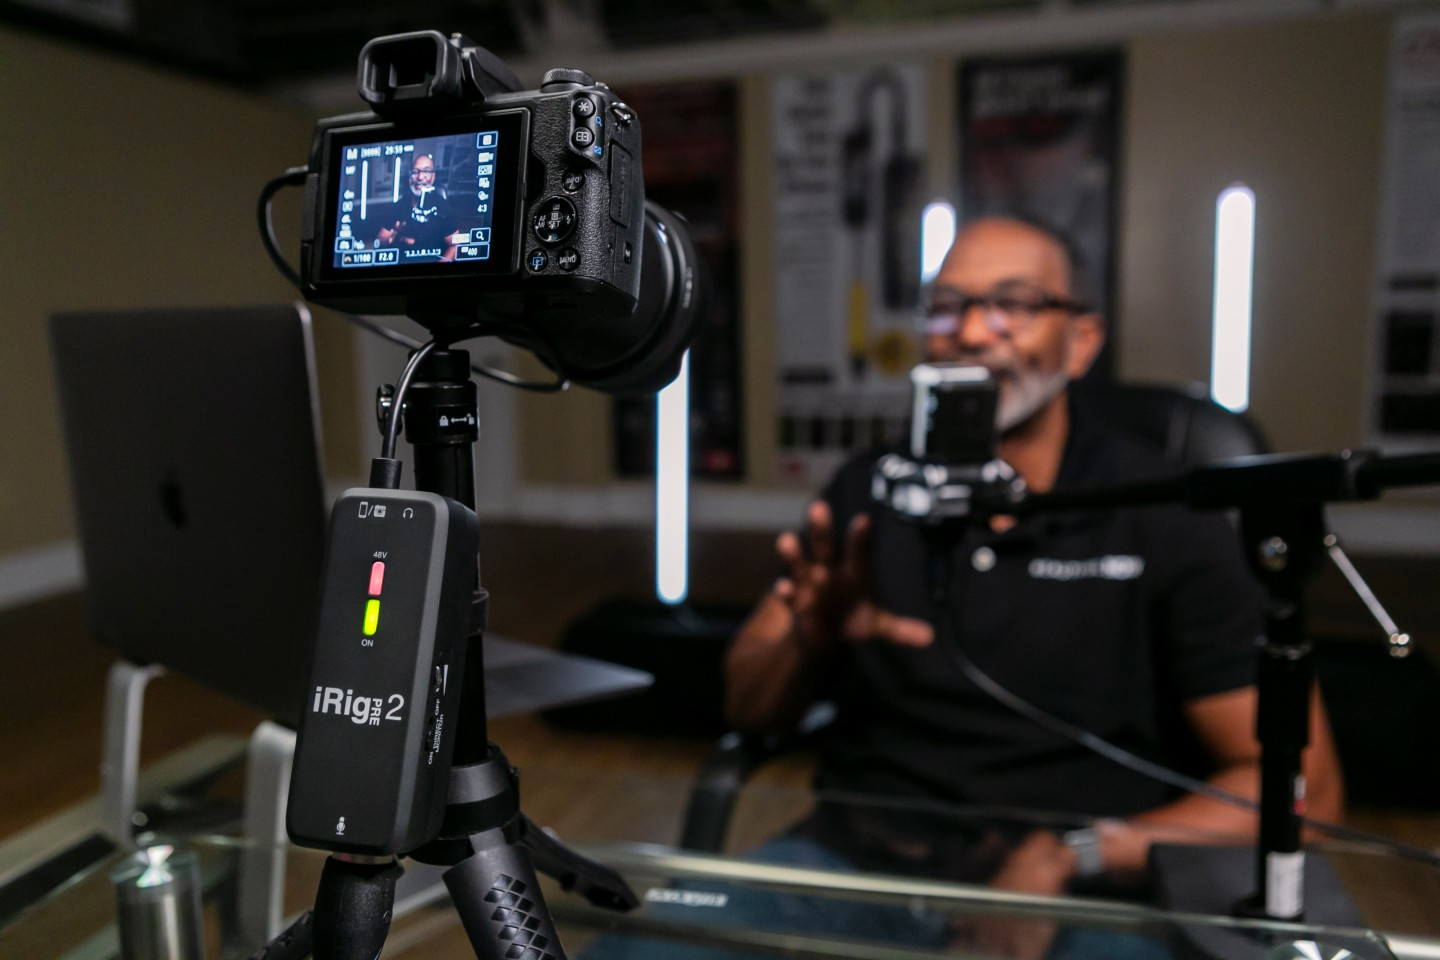 An auto-switching circuit makes using an XLR microphone with digital cameras easy